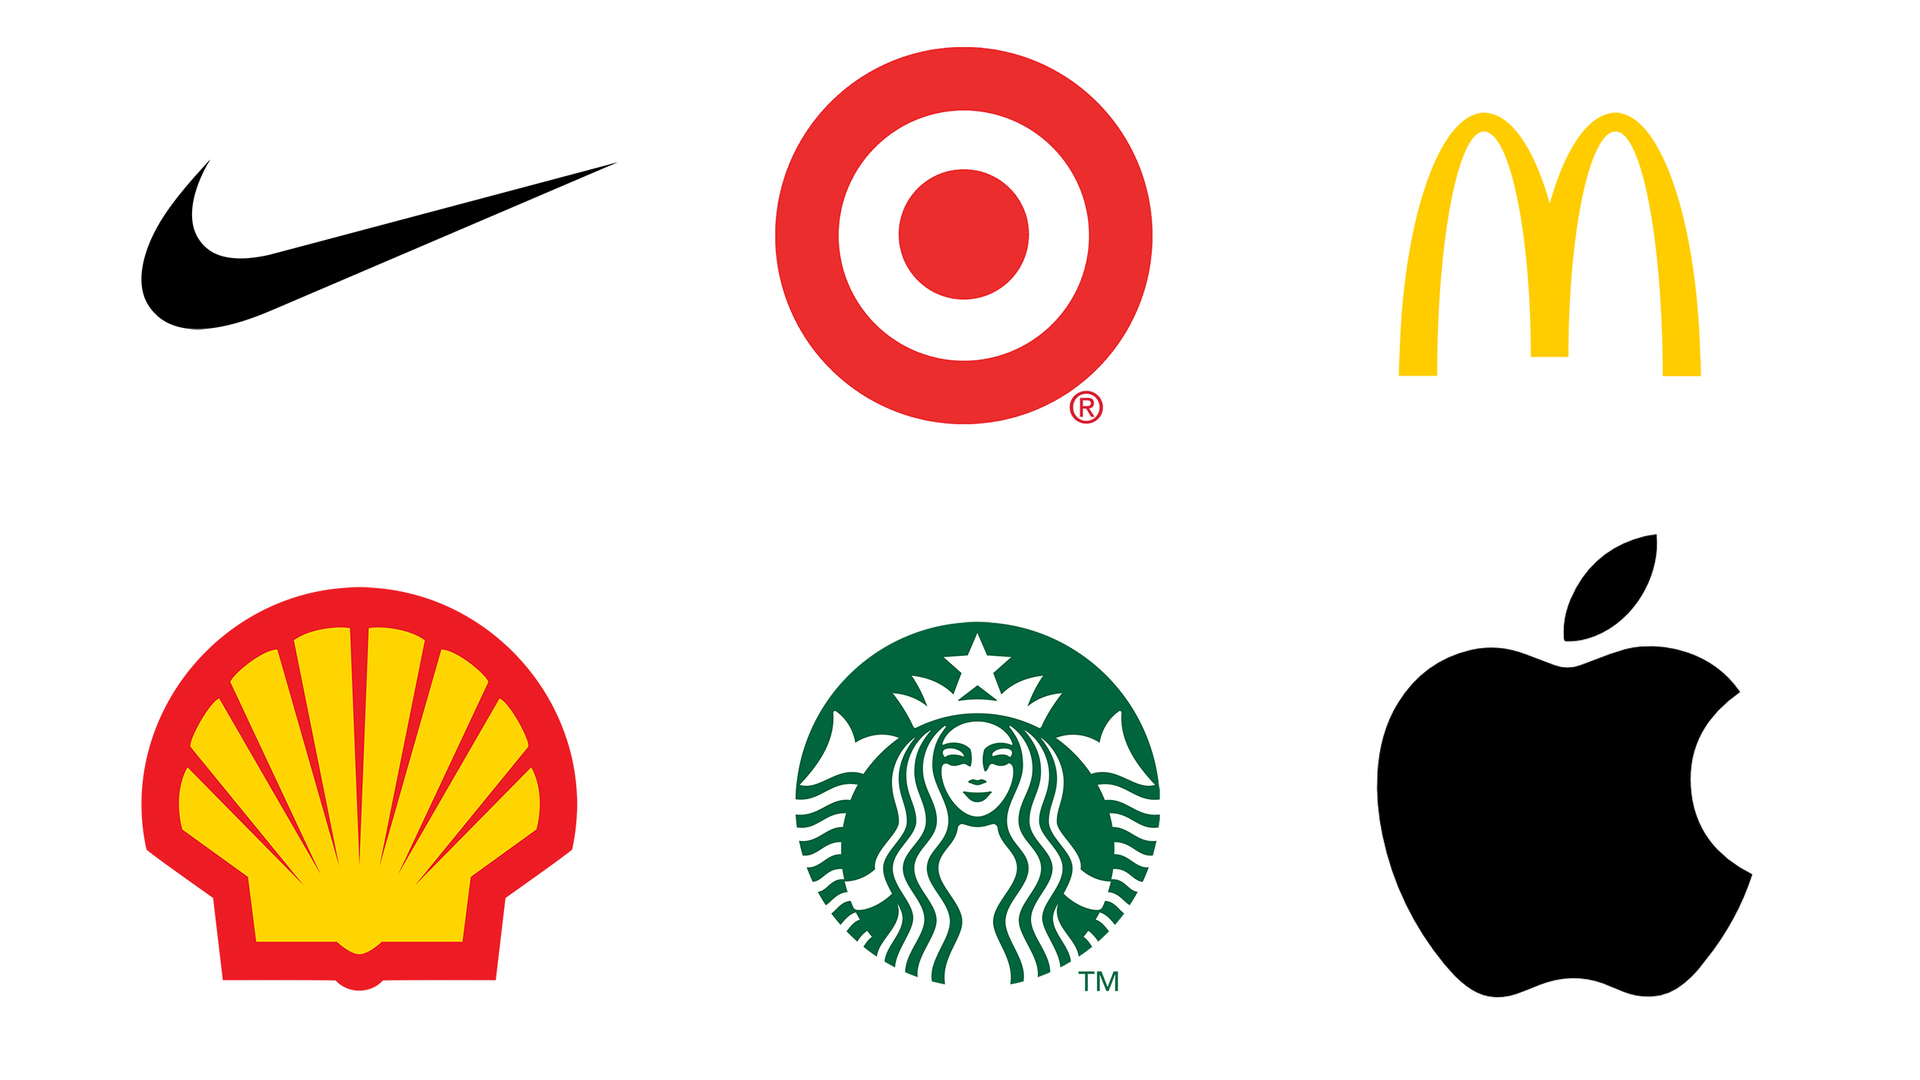 Significance of logo and taglines in brand endorsement